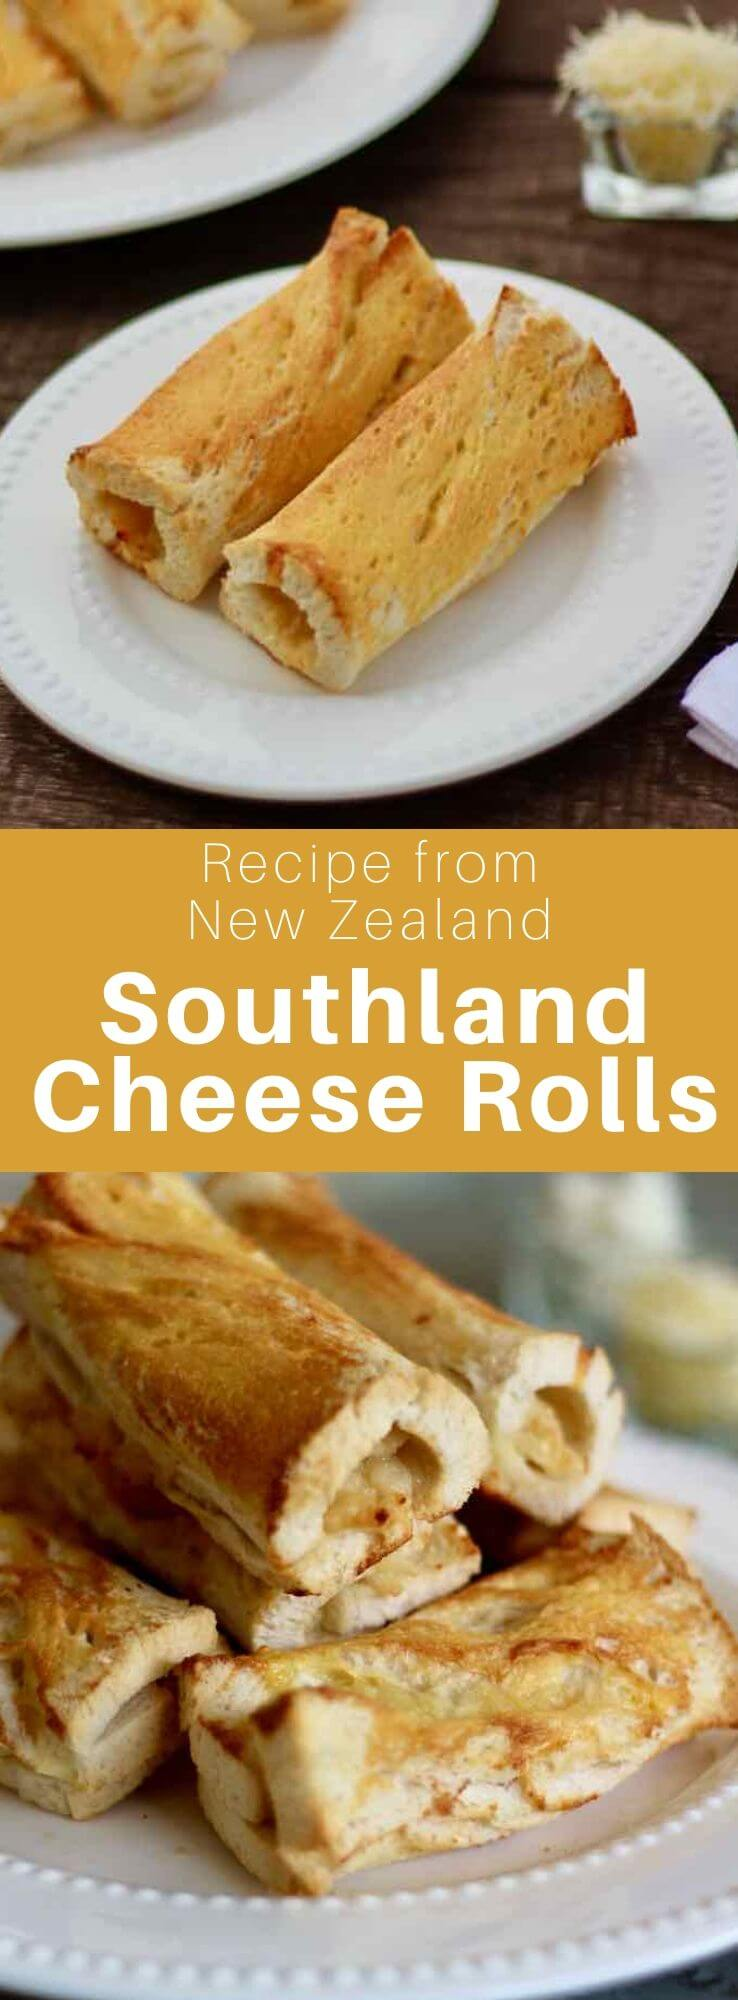 The New Zealand Southland cheese roll is white bread spread with a sauce of evaporated milk, cheese and onion powder, rolled and toasted. #NewZealand #WorldCuisine #196flavors